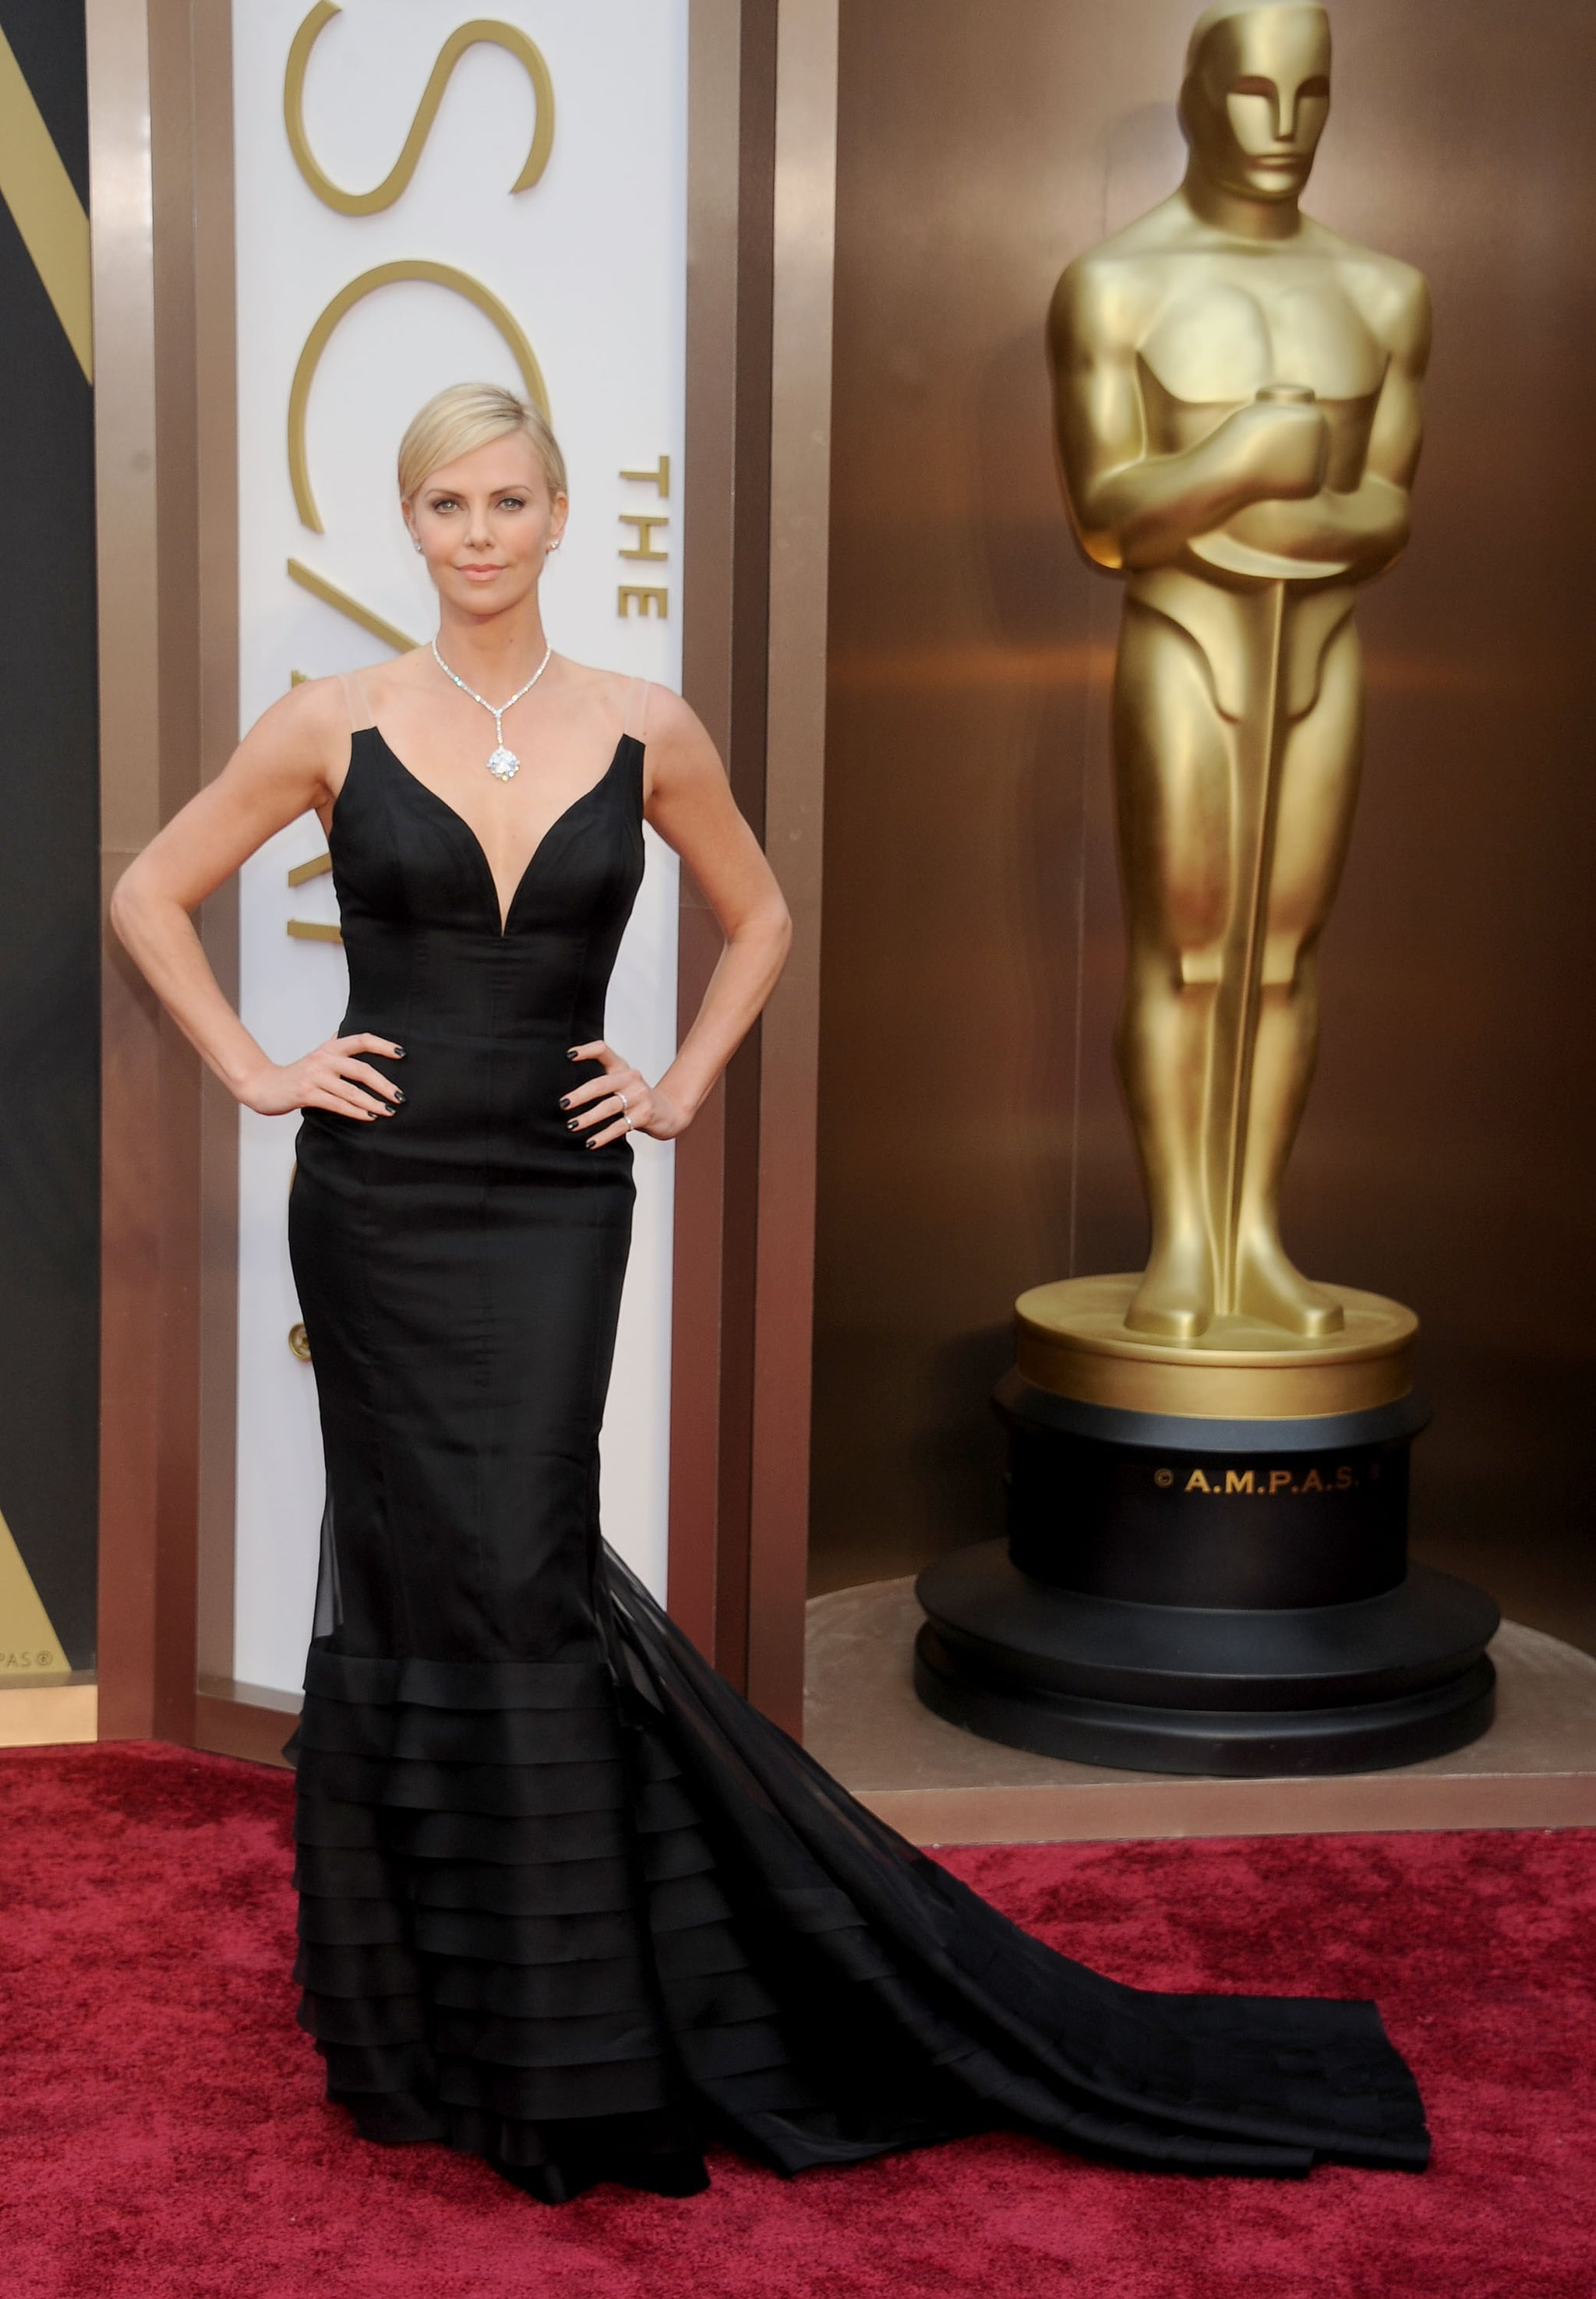 Charlize took the Academy Awards red carpet in this jaw-dropping, sheer-overlay Dior gown. It was certainly one of her most memorable fashion moments, as she soared to the top of best-dressed lists without the help of a bright color.